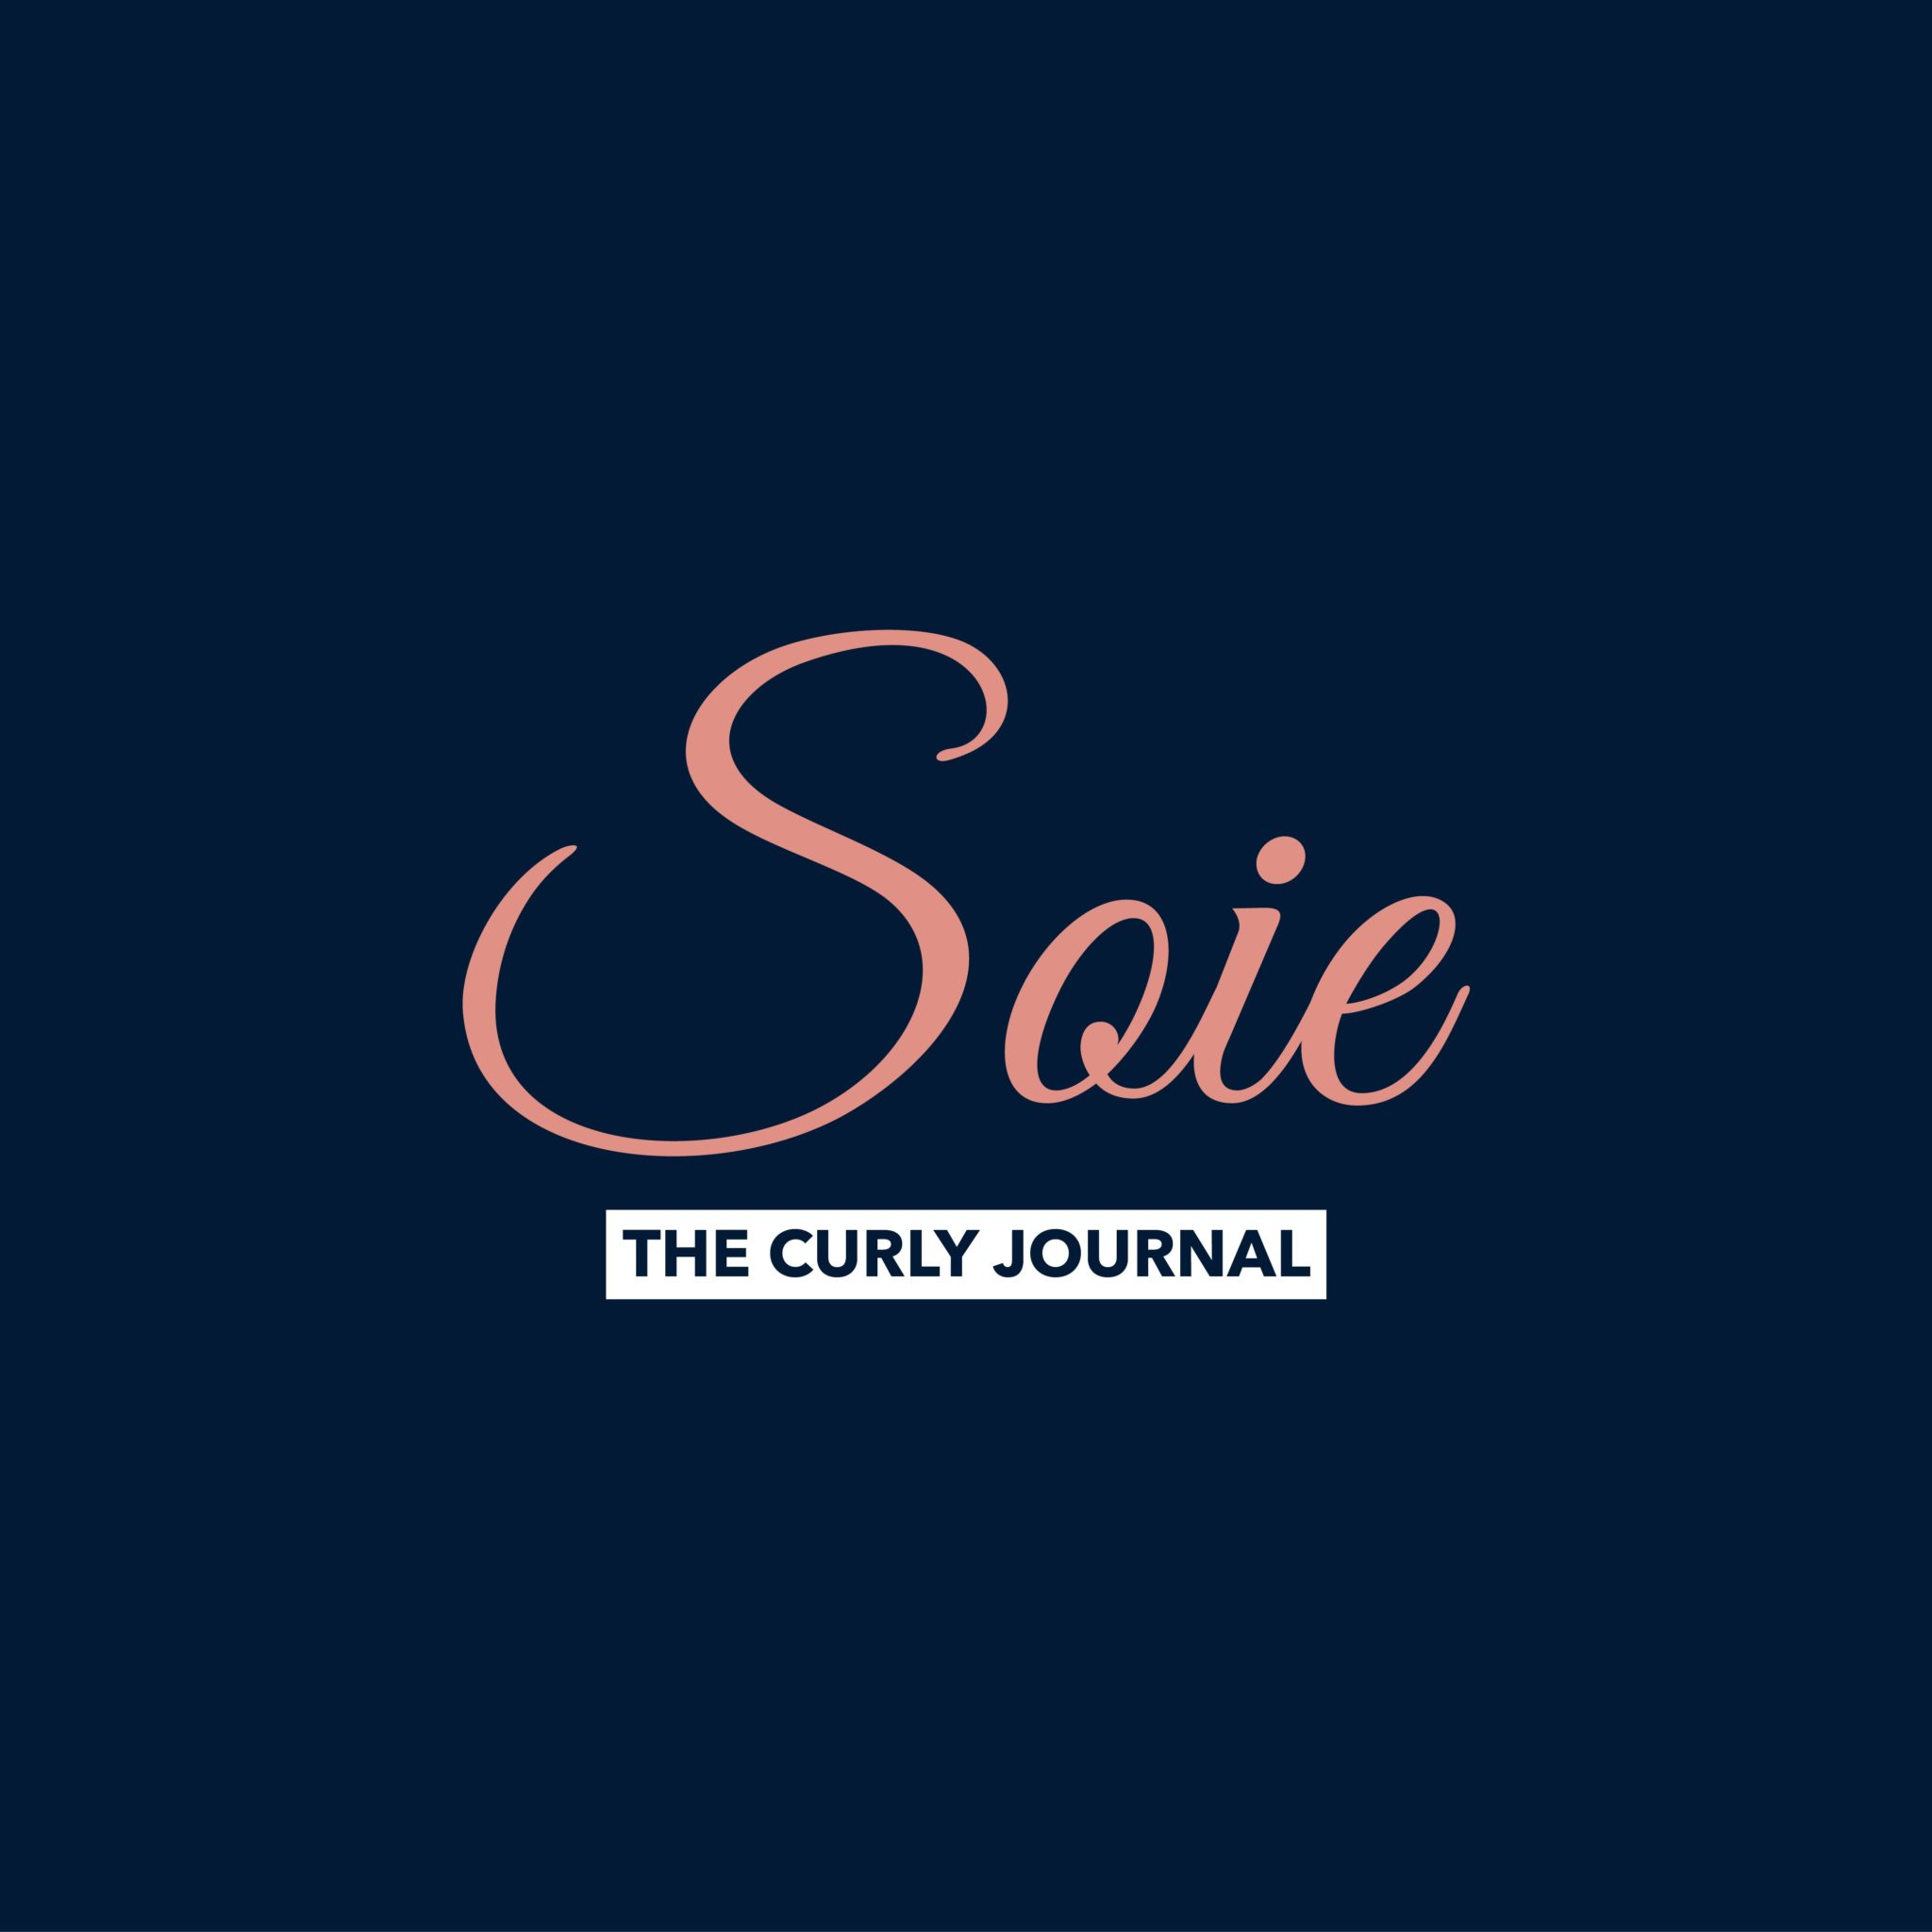 Soie - The Curly Journal - Main Image